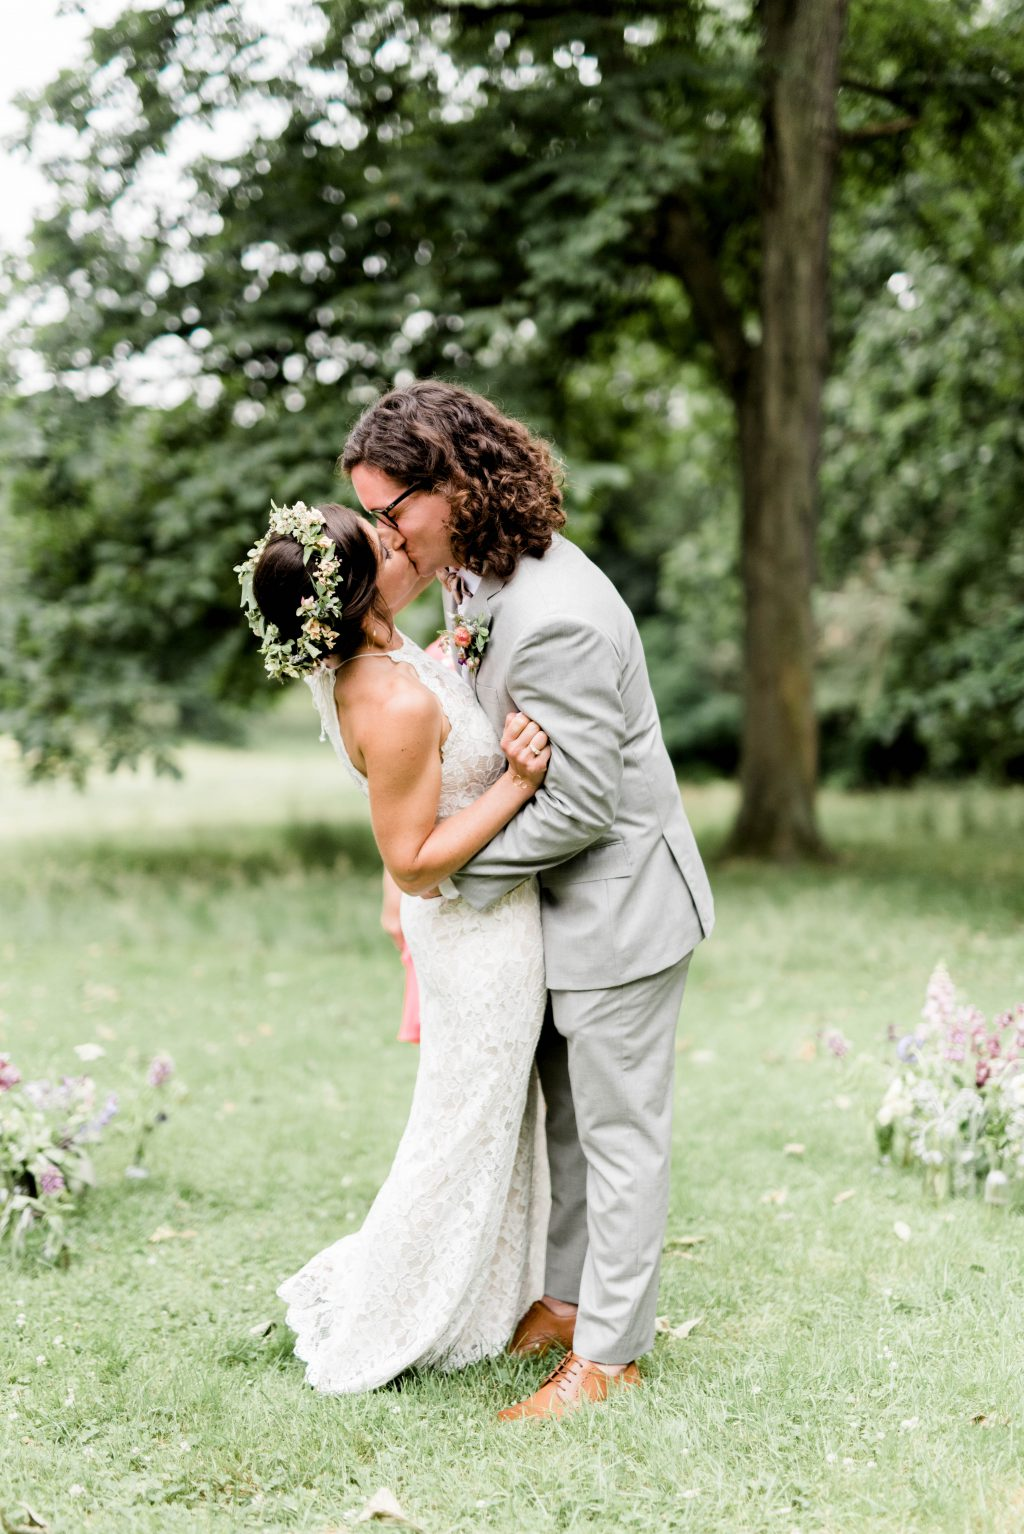 awbury-arboretum-wedding-DIY-boho-summer-haley-richter-photography-145